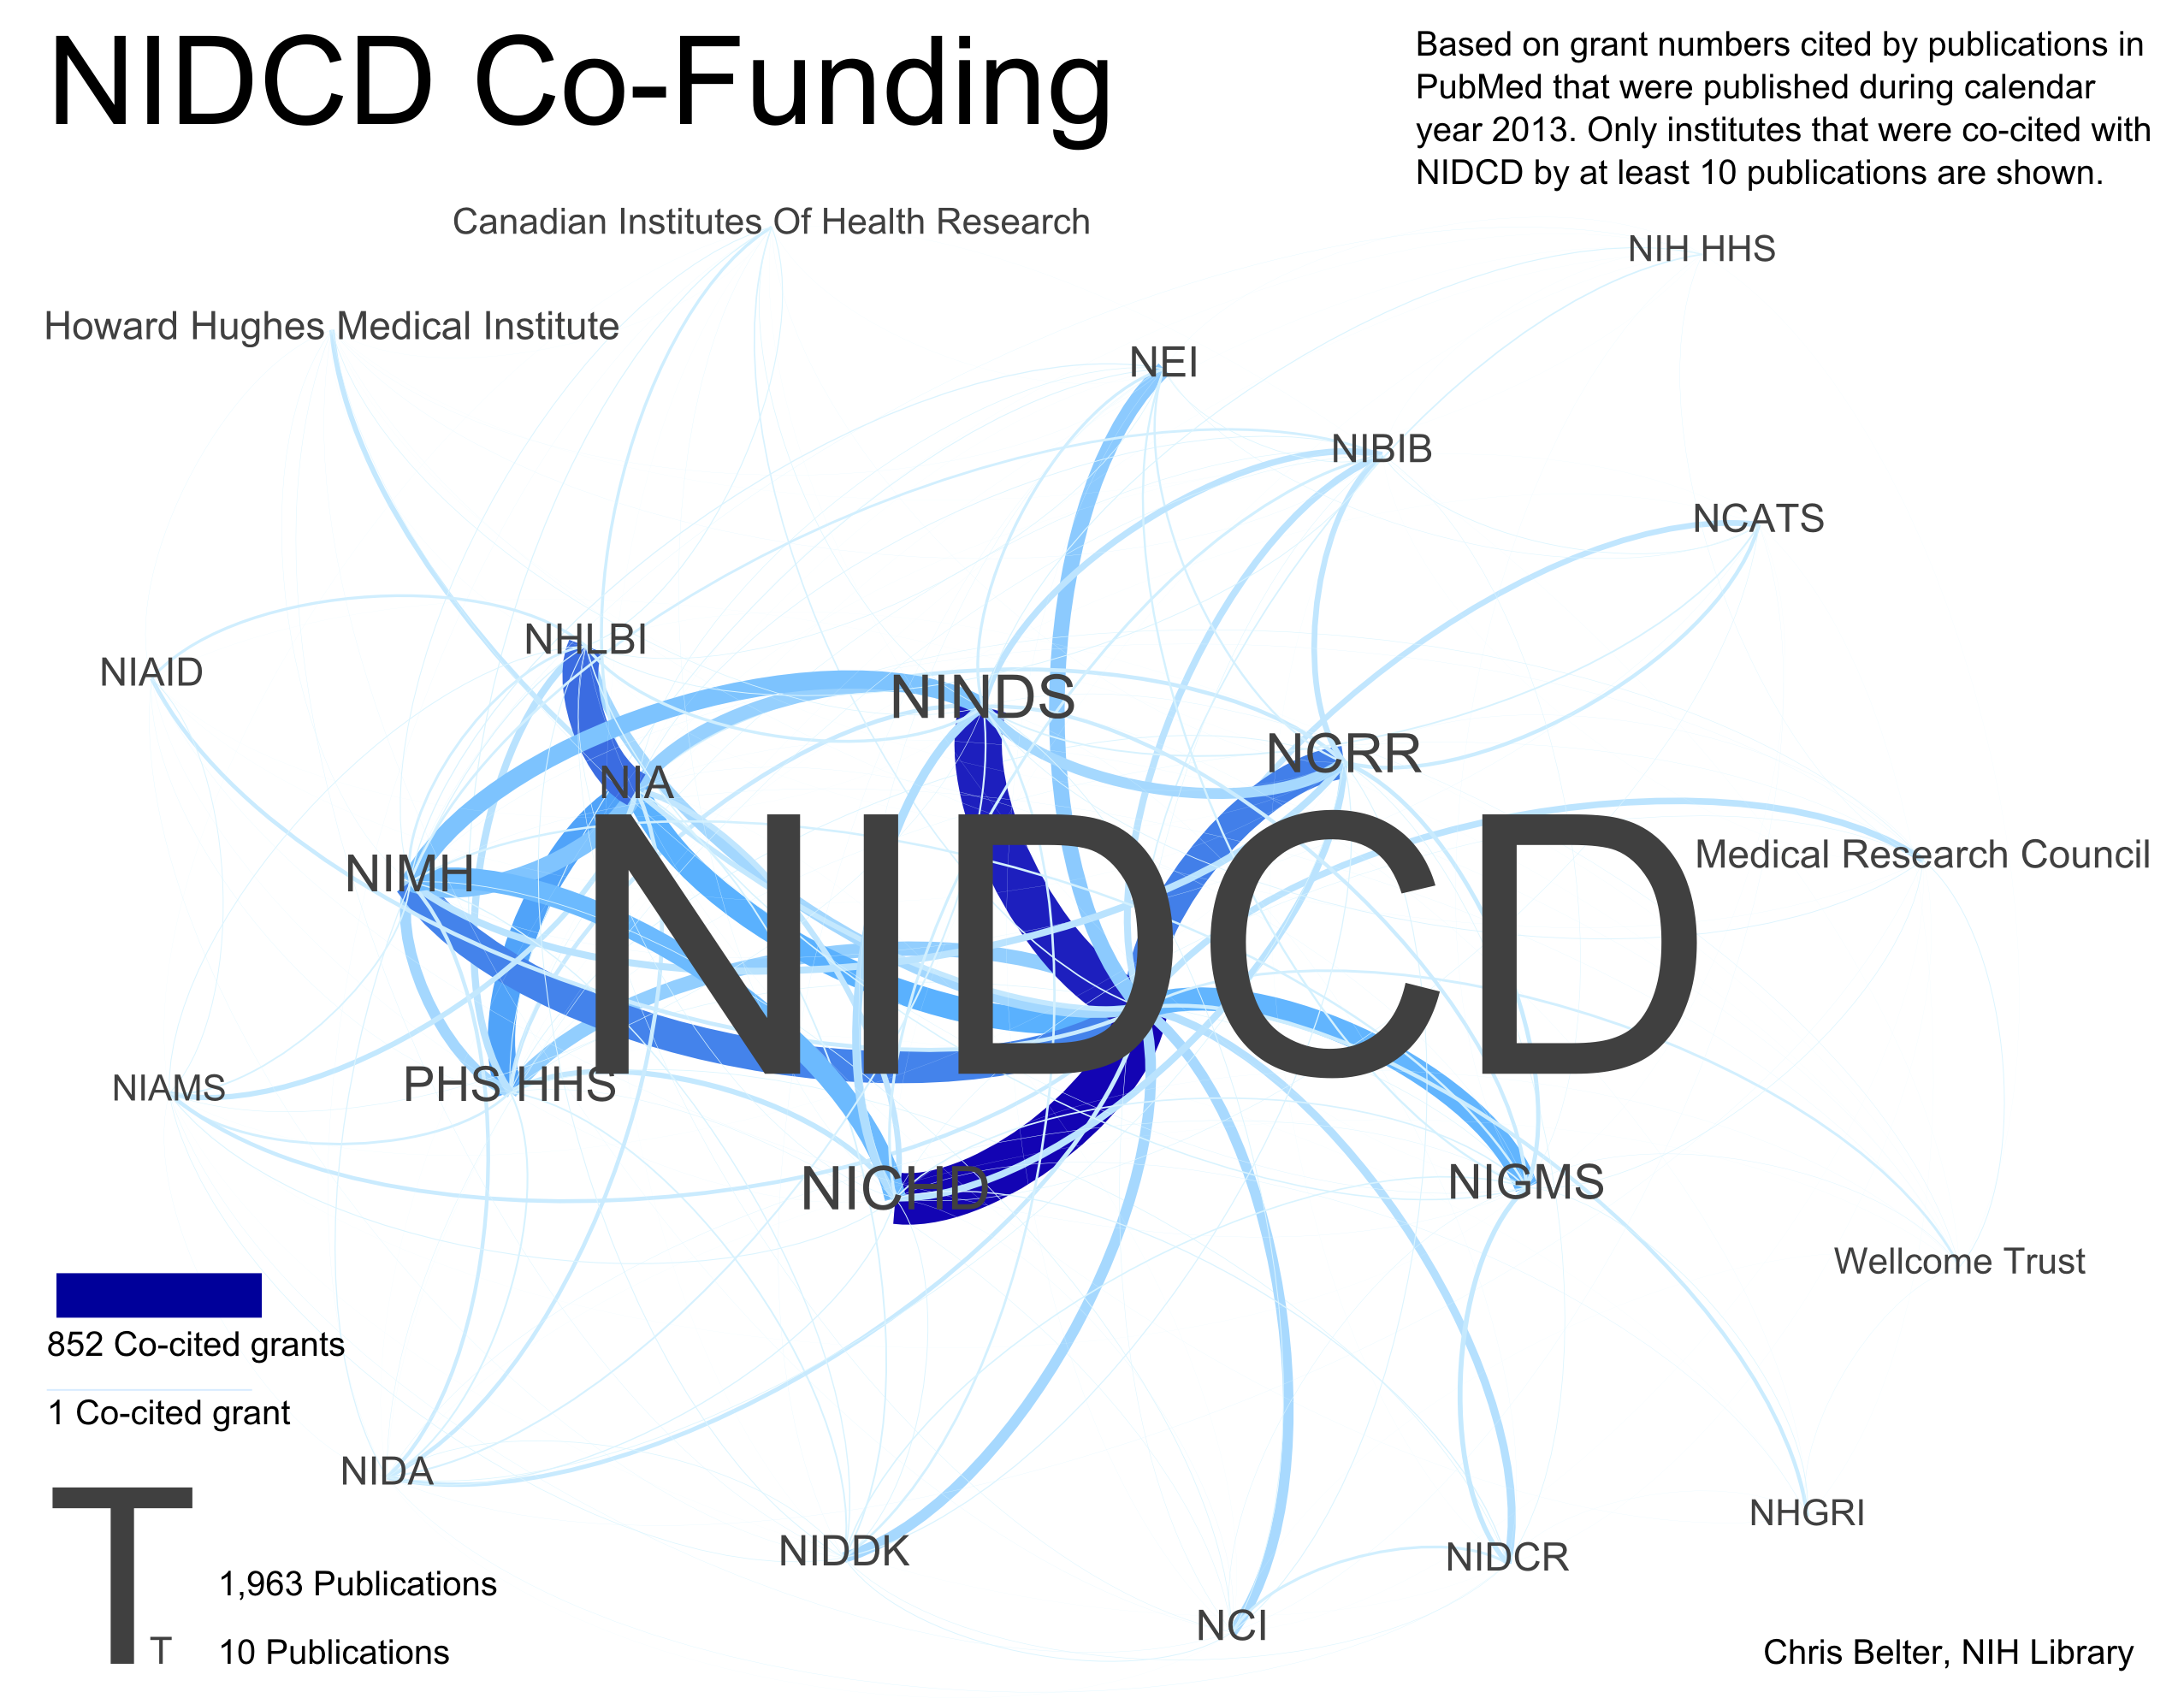 Image of acronyms and connected lines depicted co-funding relationships between NIH Institutes and Centers